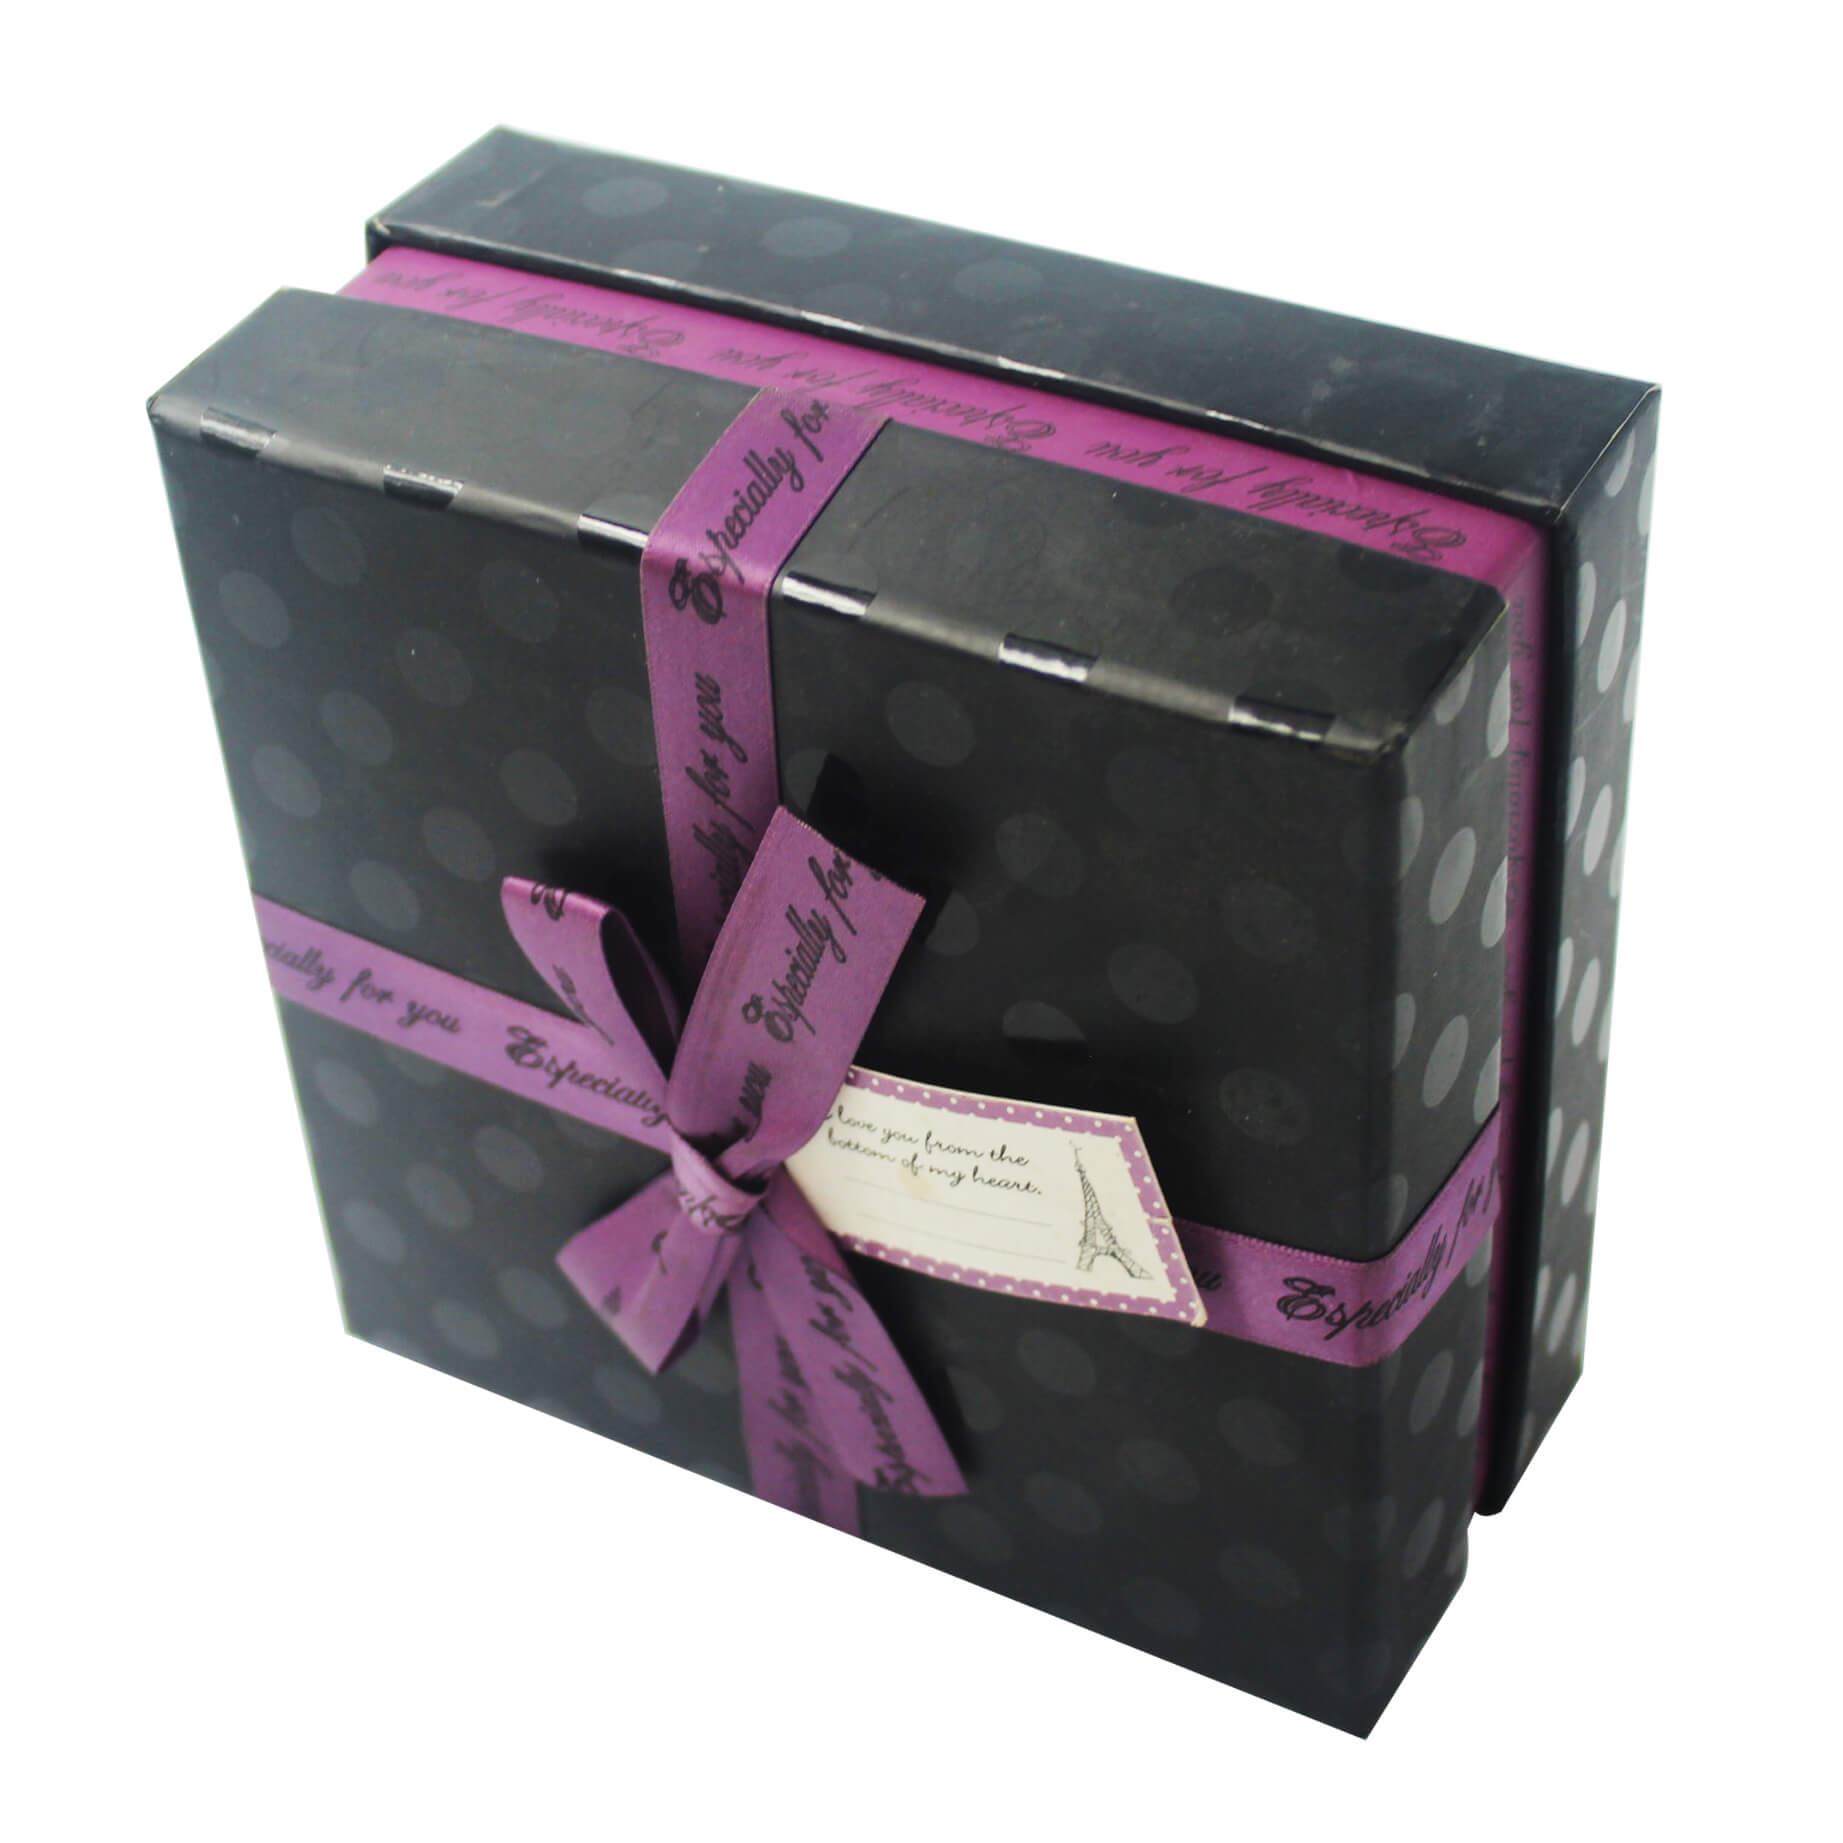 gift packaging box.JPG